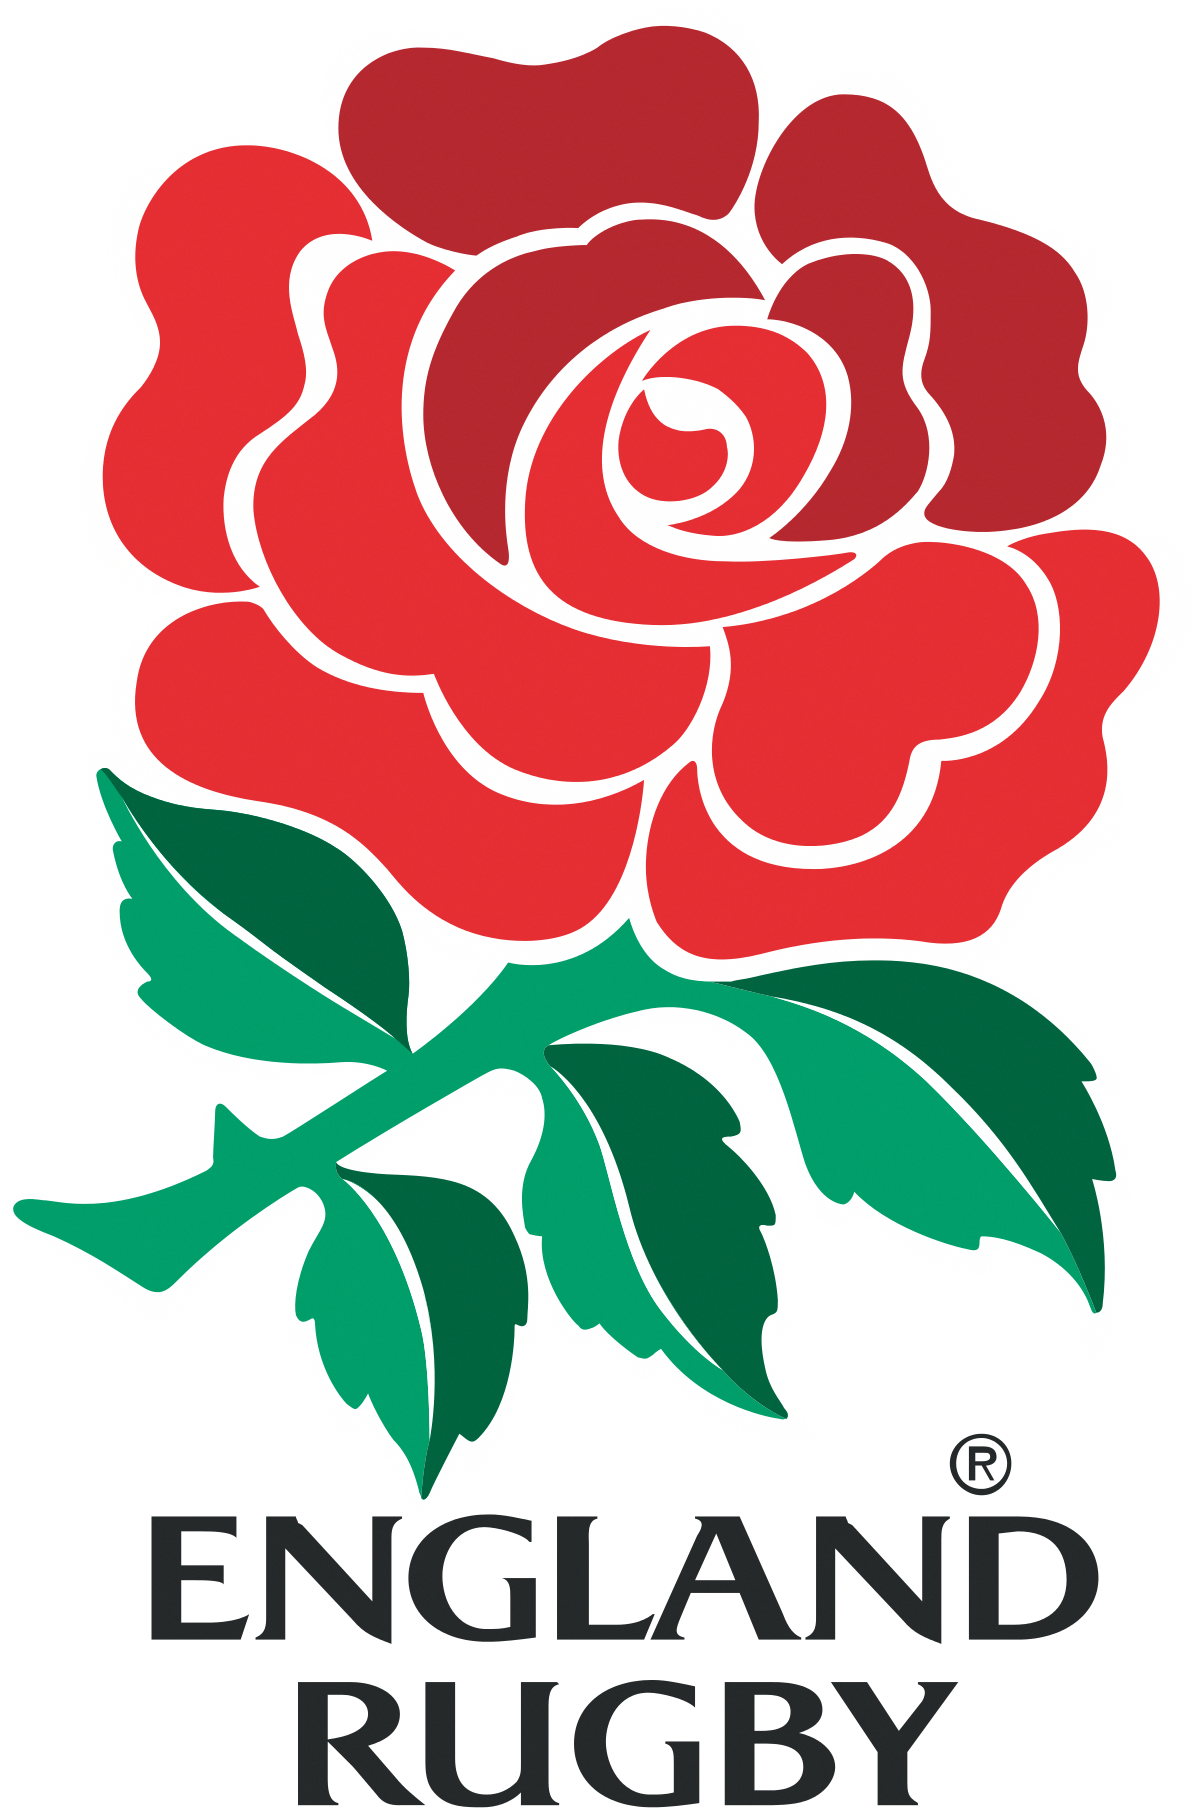 The RFU are passionate about growing the game of rugby